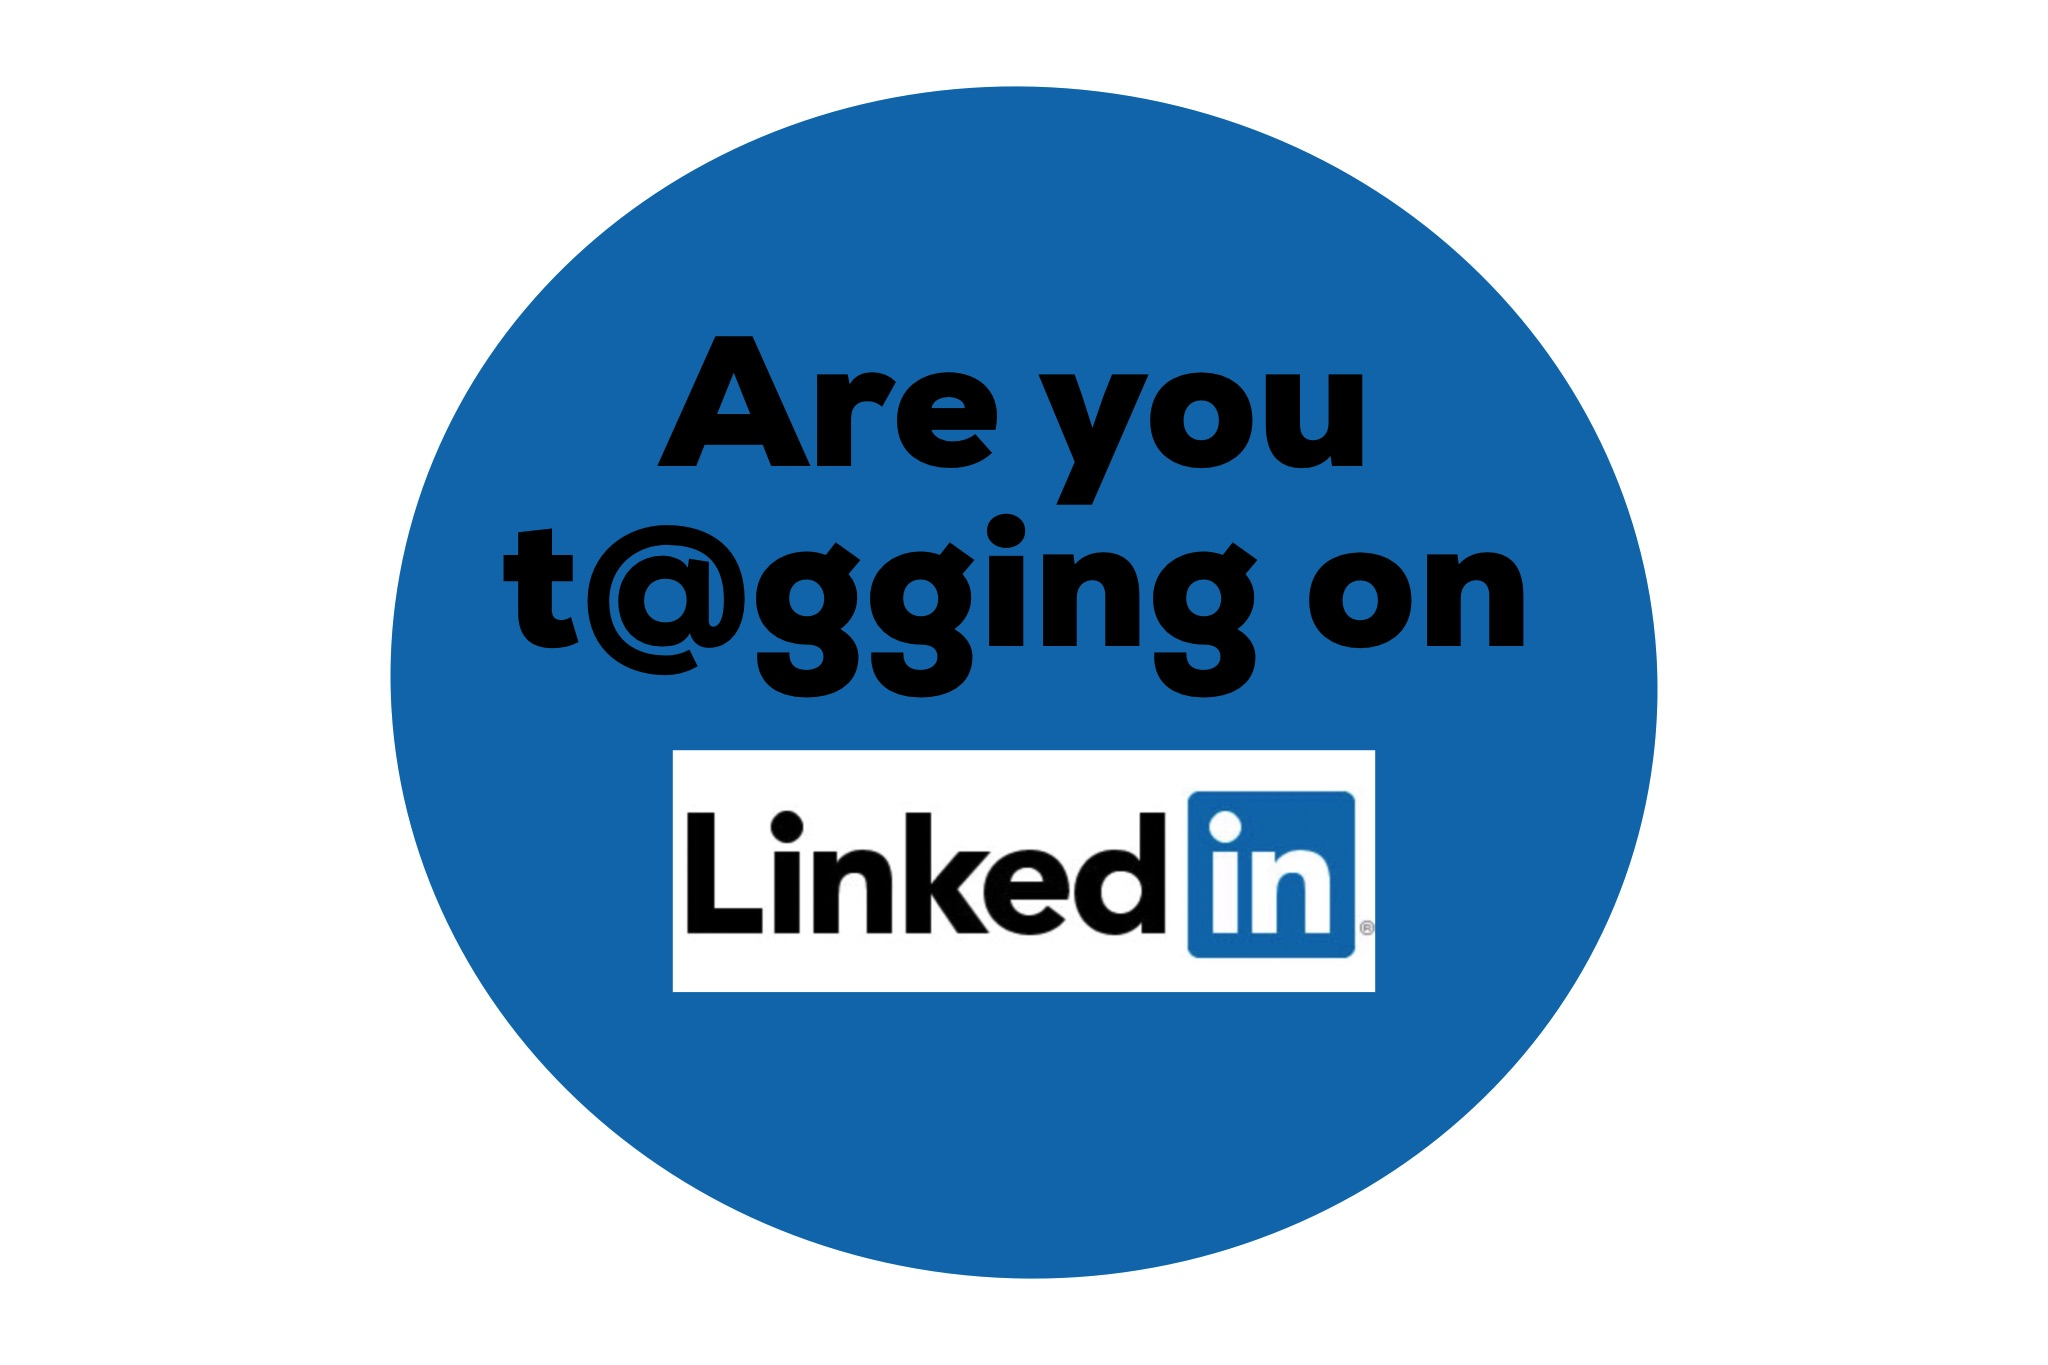 Are You T@gging People and Companies on LinkedIn?